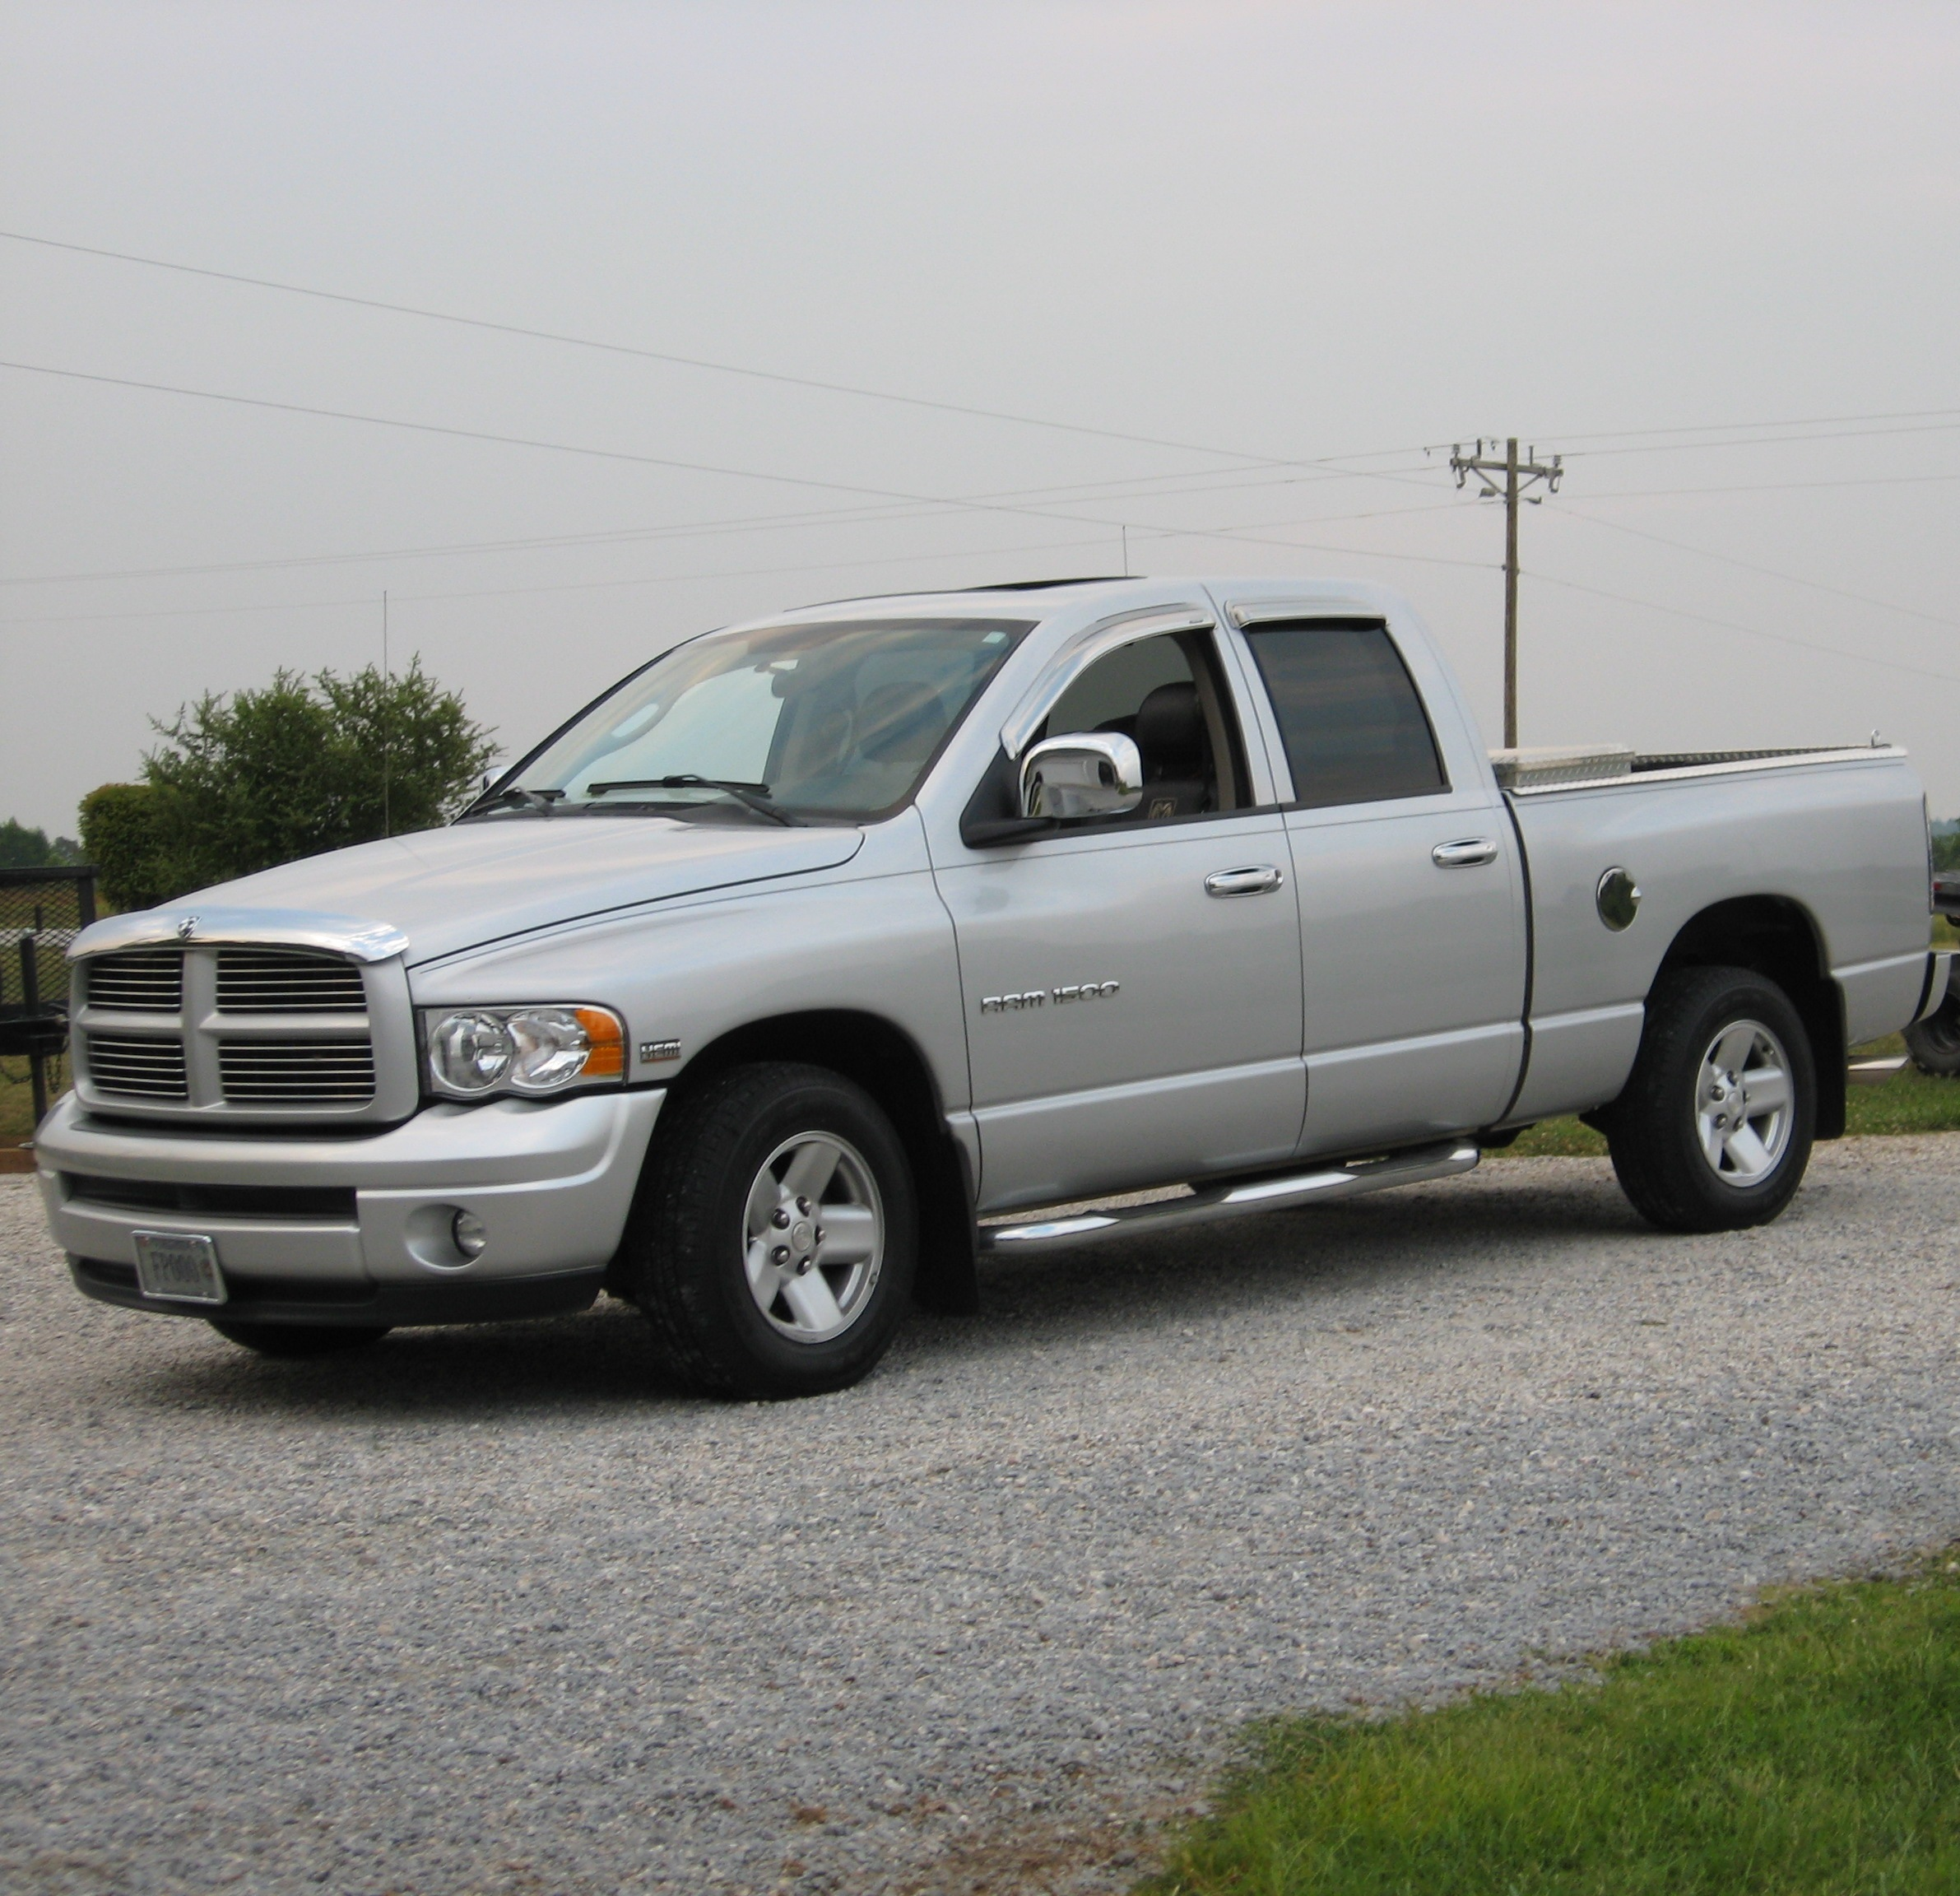 Badboy3142 2003 Dodge Ram 1500 Regular Cab Specs, Photos